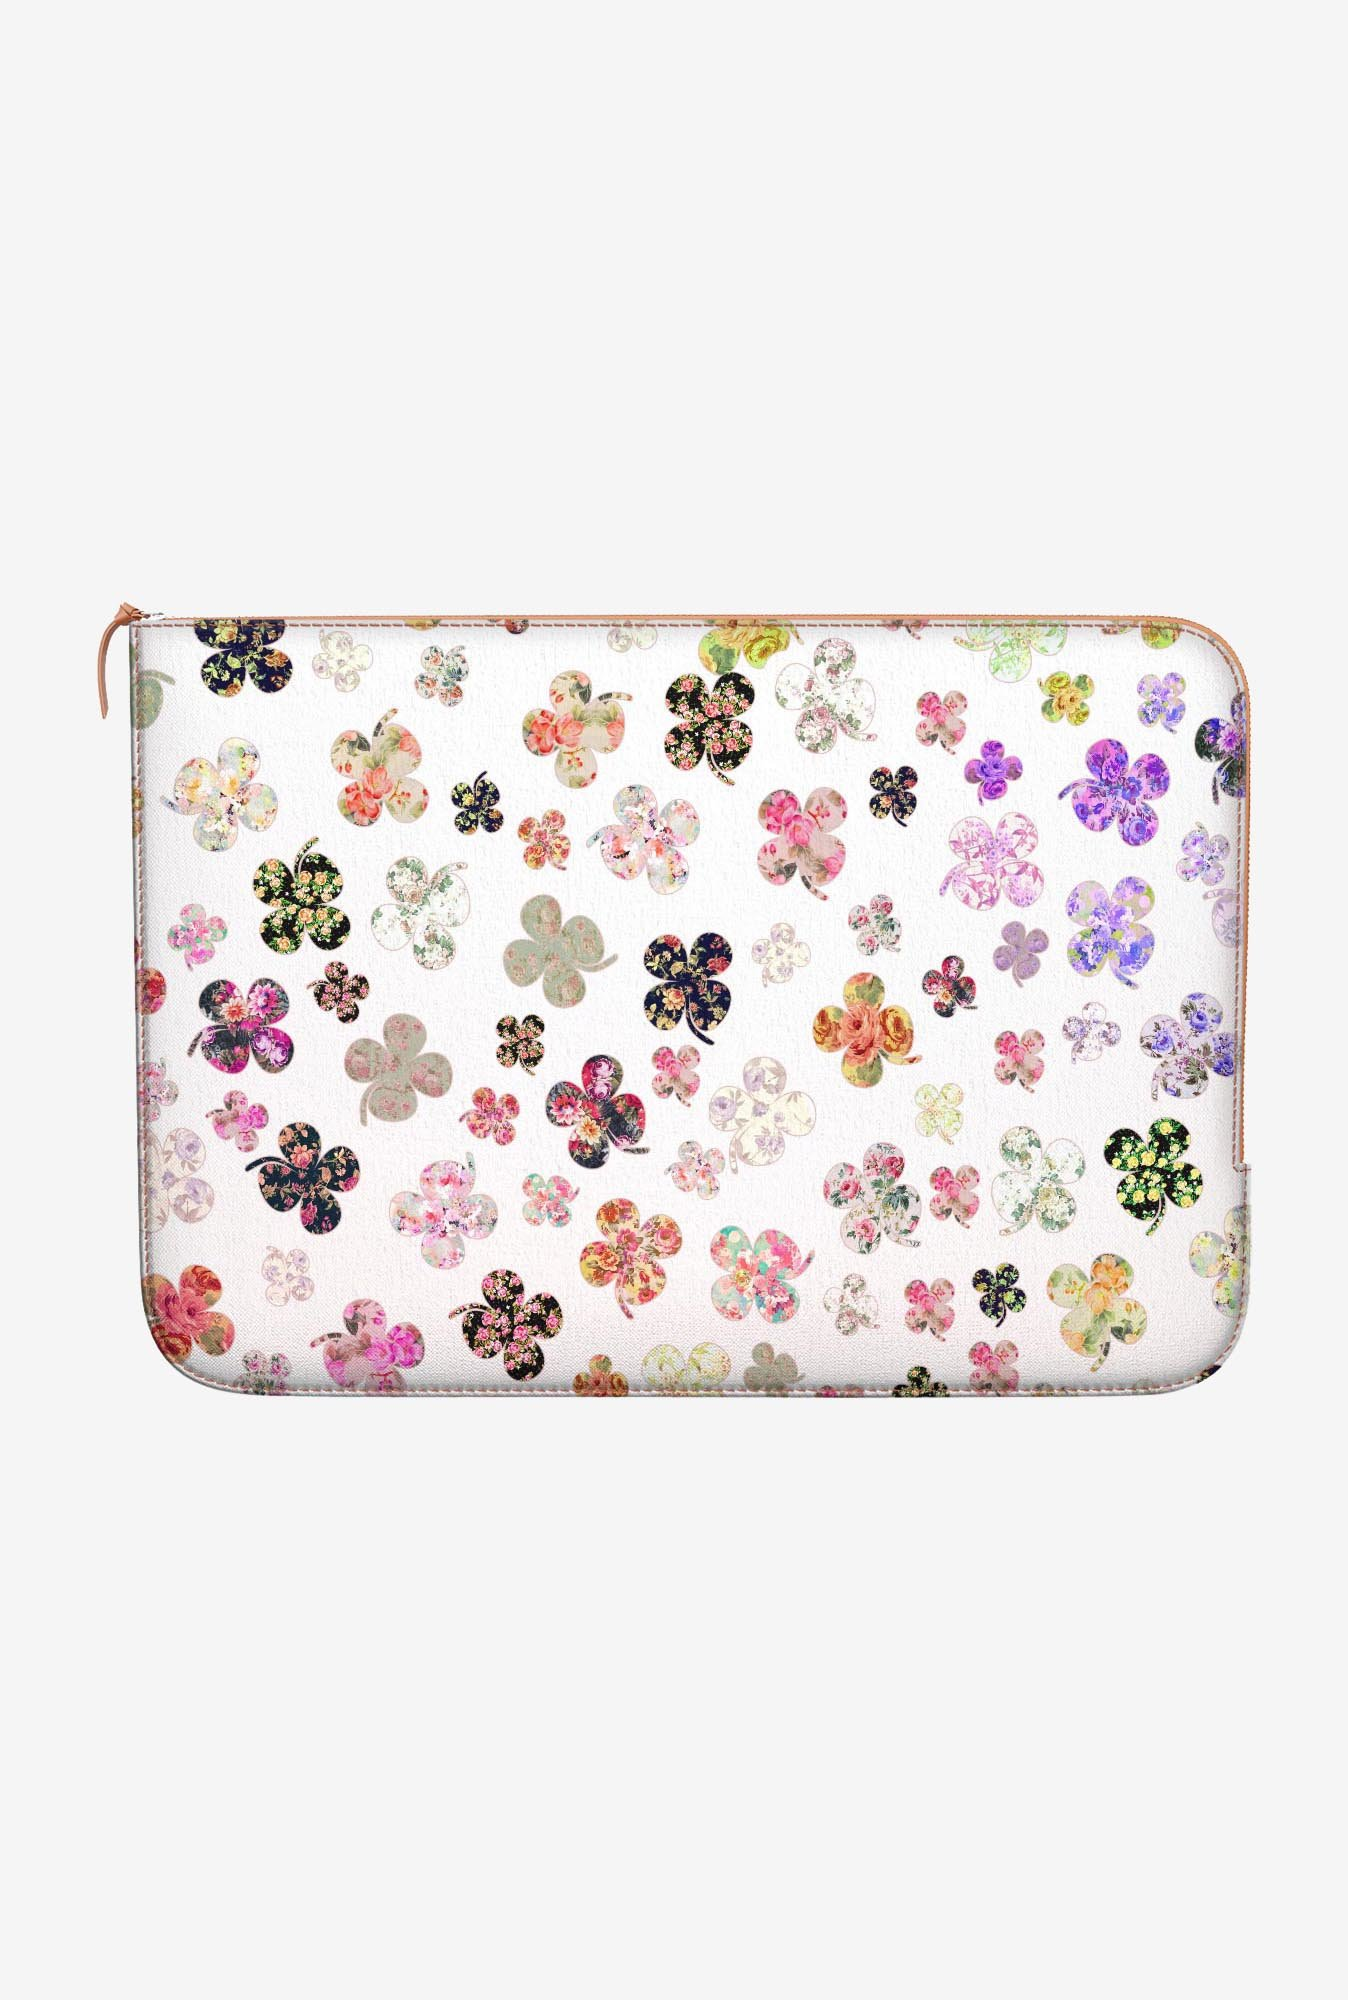 DailyObjects Floral Clovers MacBook Pro 15 Zippered Sleeve